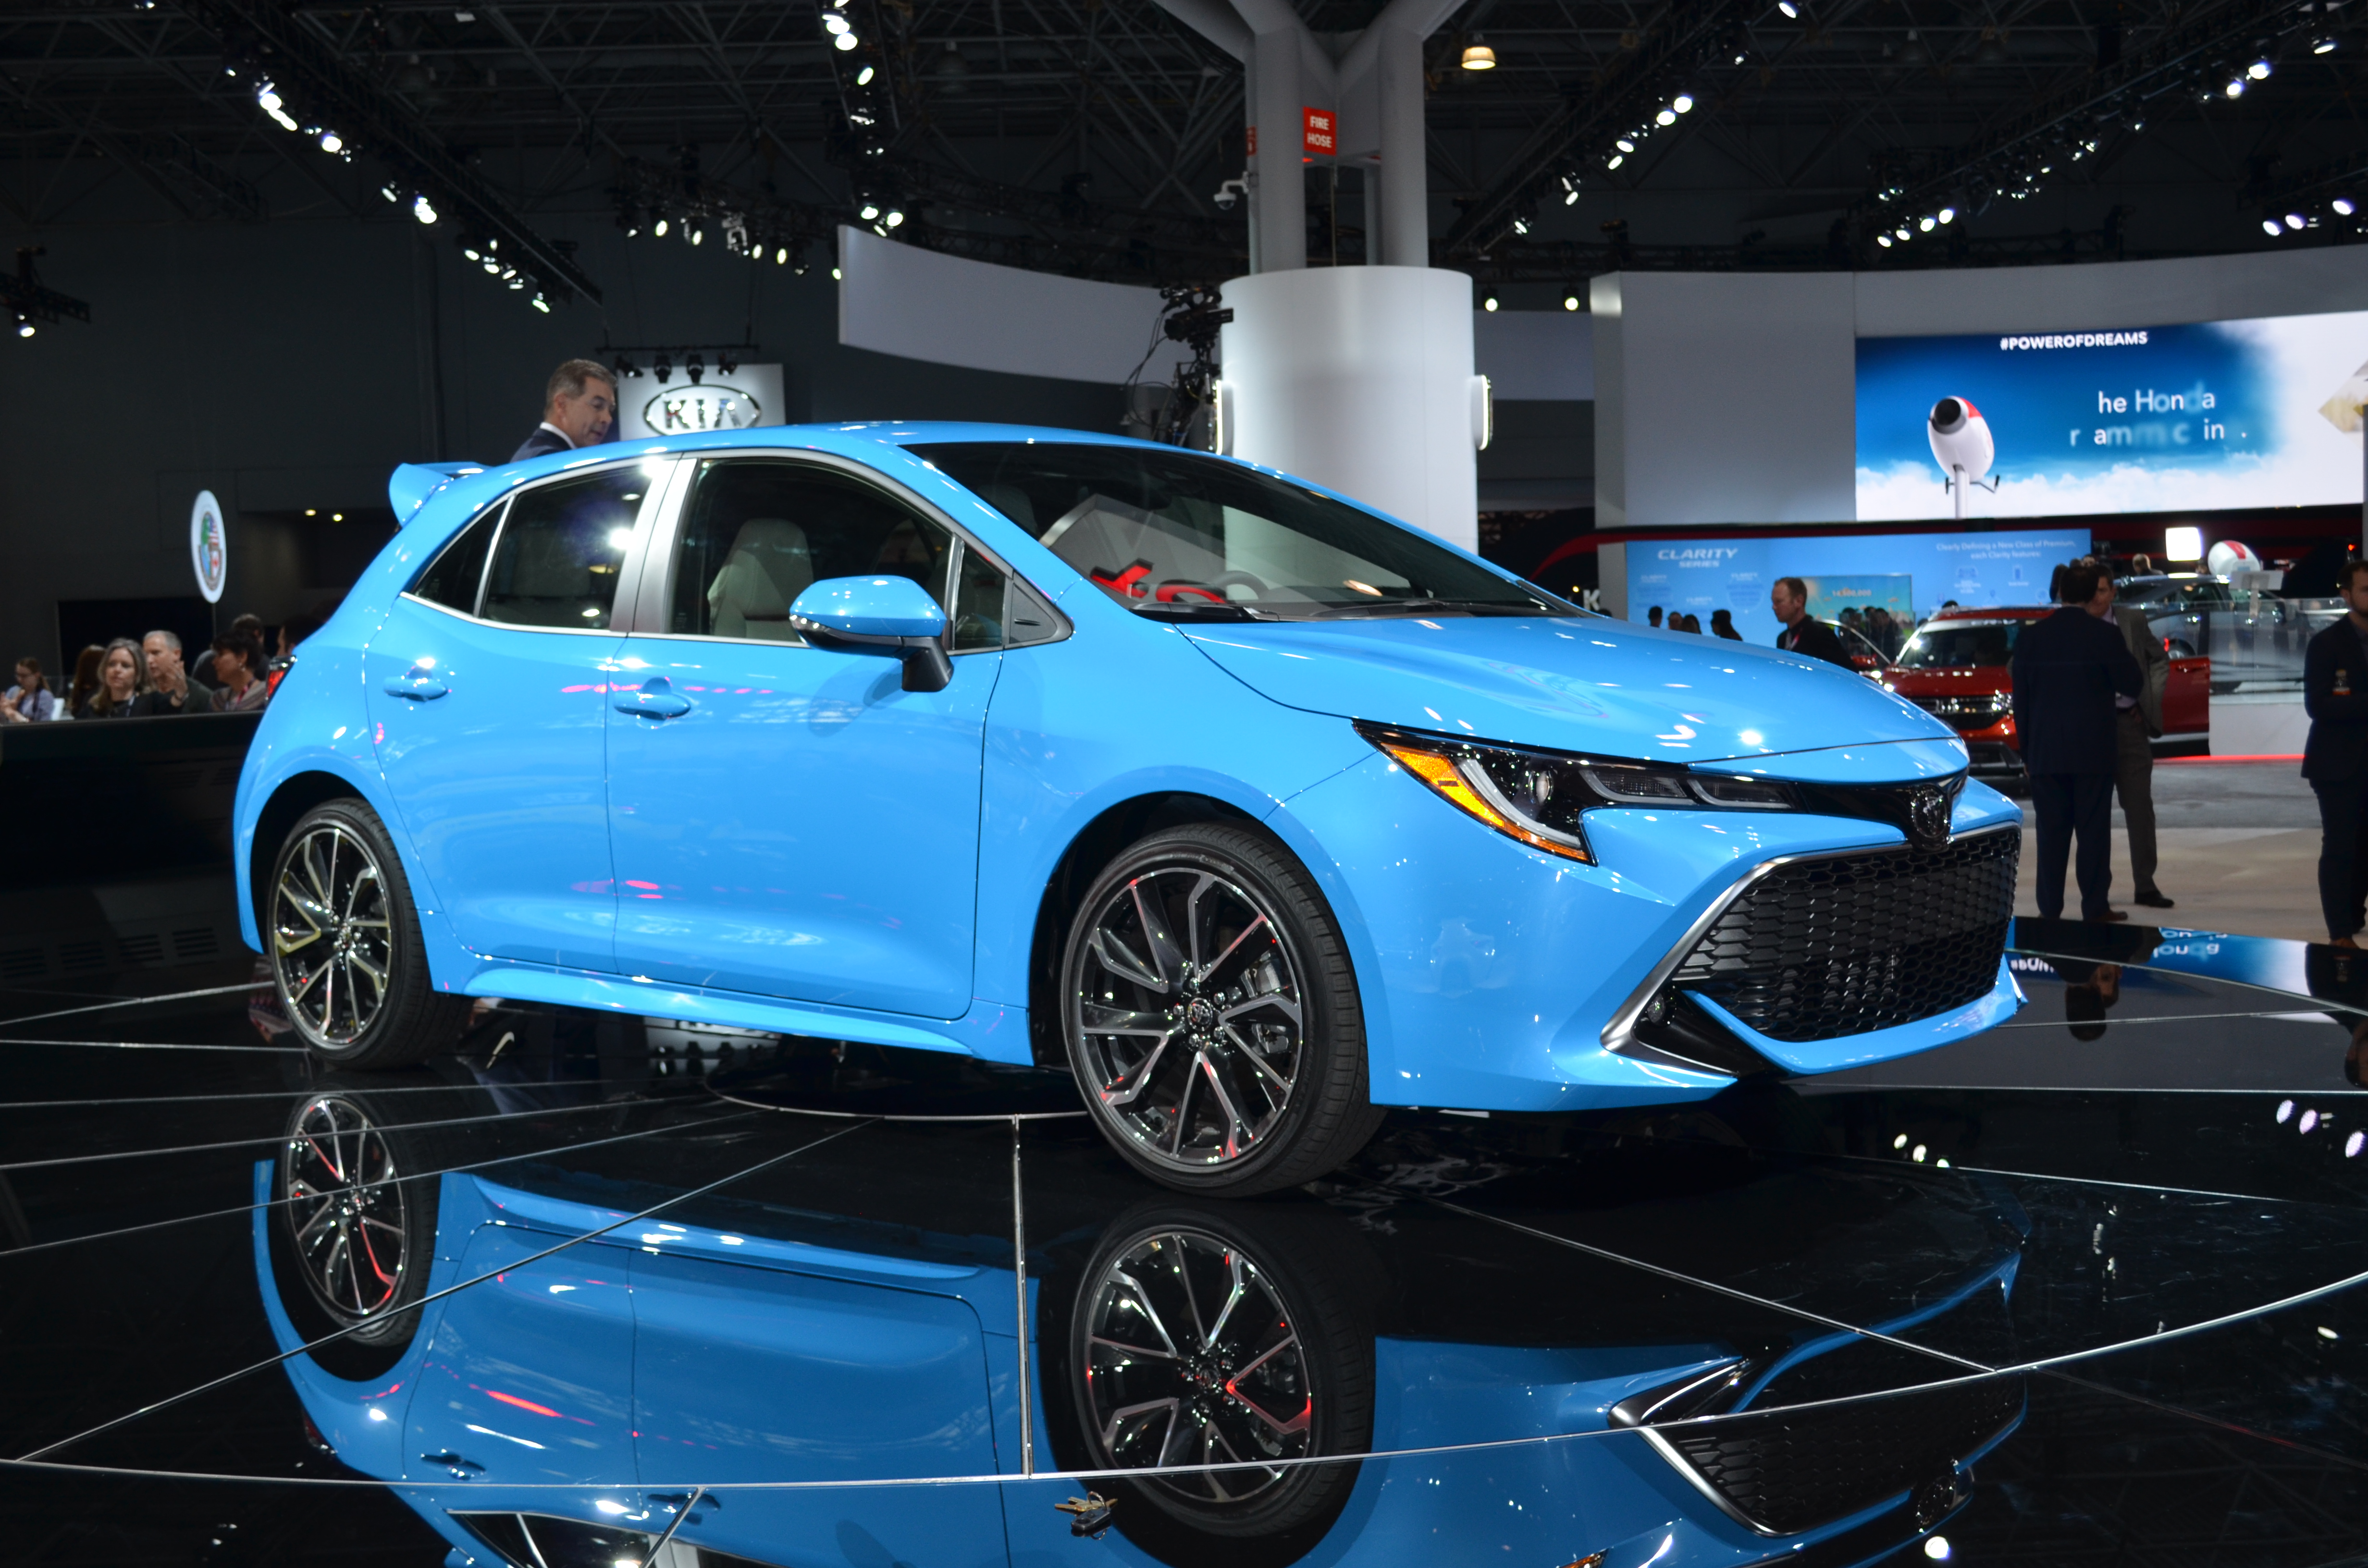 Toyota's best-selling vehicle, the Corolla, Gets Major Upgrades For New 2019 Model